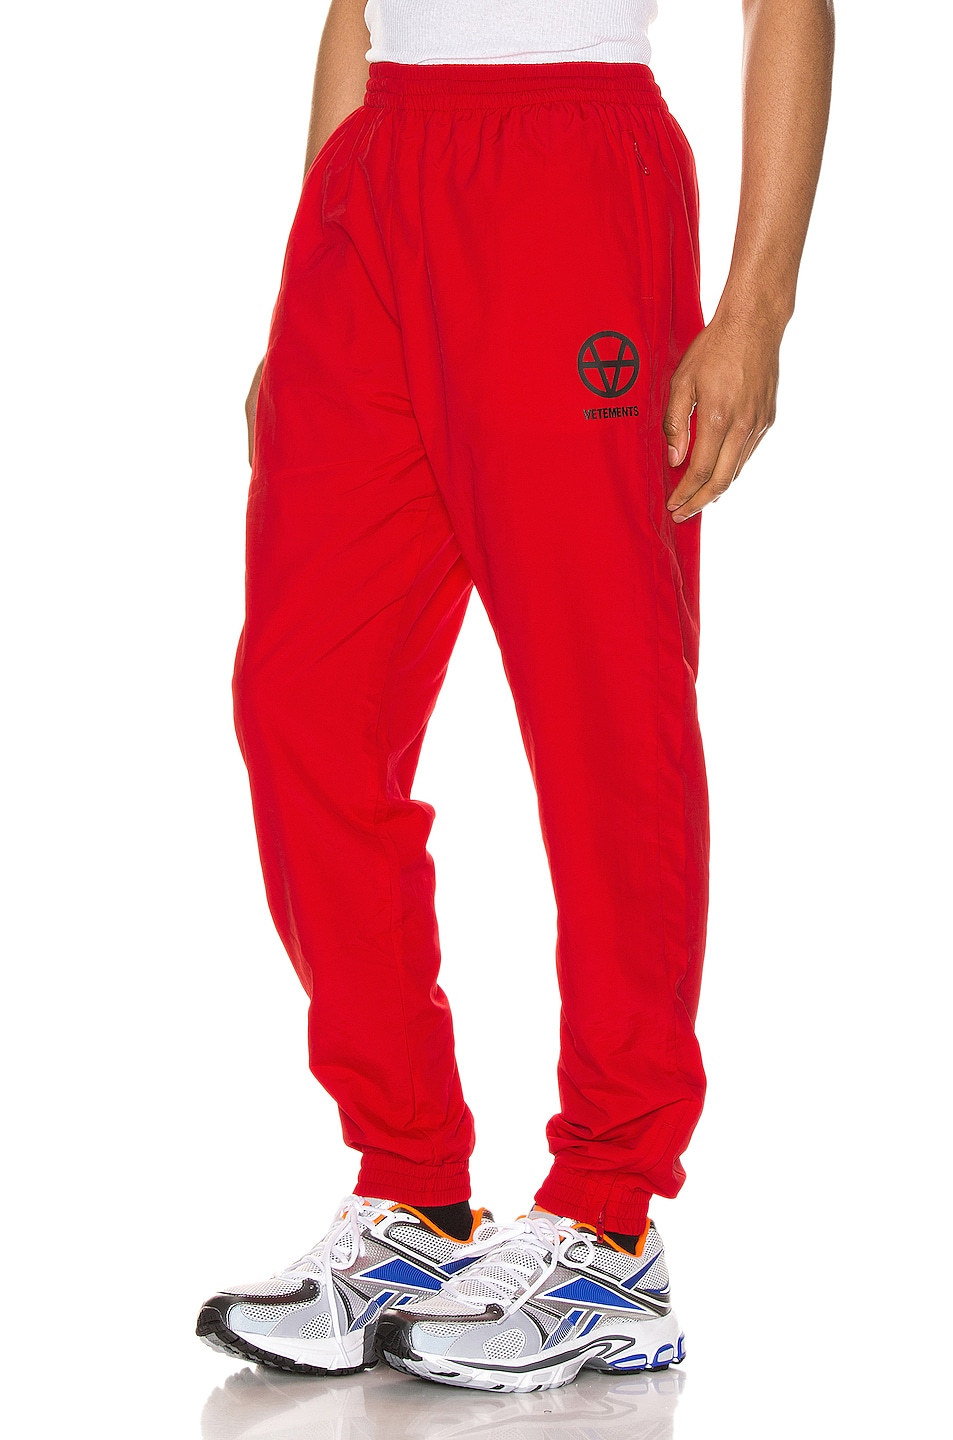 Image 1 of VETEMENTS Anarchy Tracksuit Pants in Red